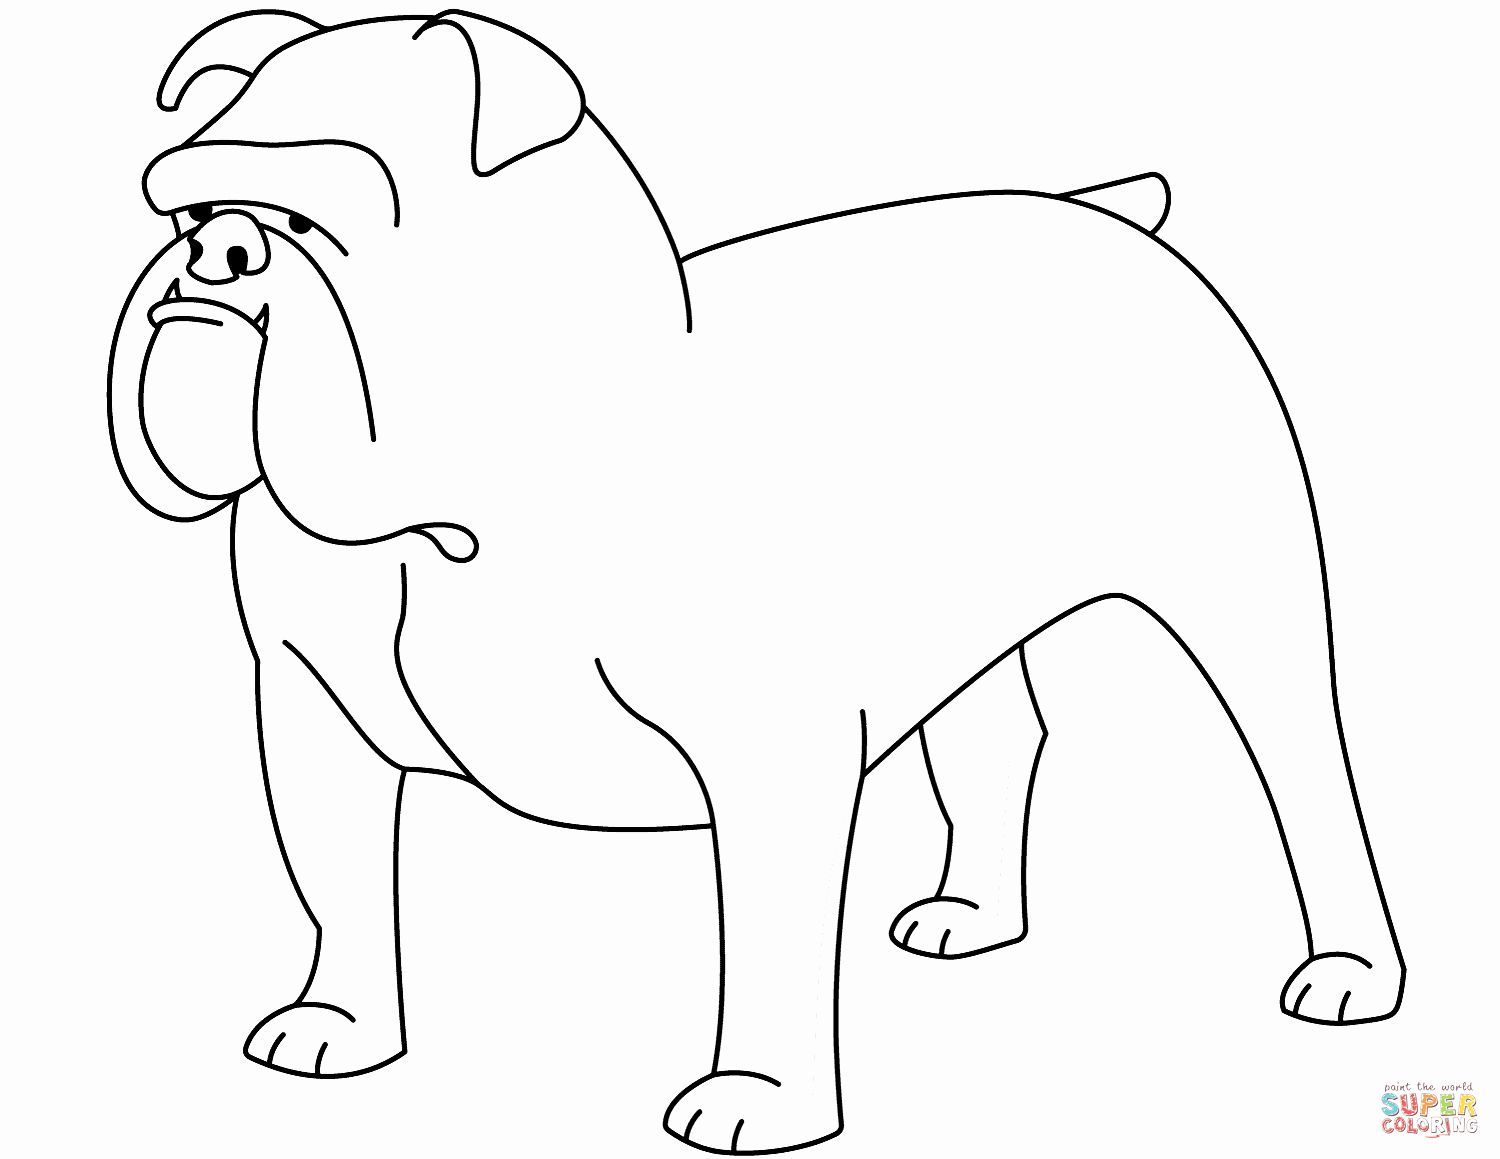 Bull Dog Coloring Page Best Of Funny Bulldog Coloring Page Dog Coloring Page Bulldog Funny Coloring Pages [ 1159 x 1500 Pixel ]